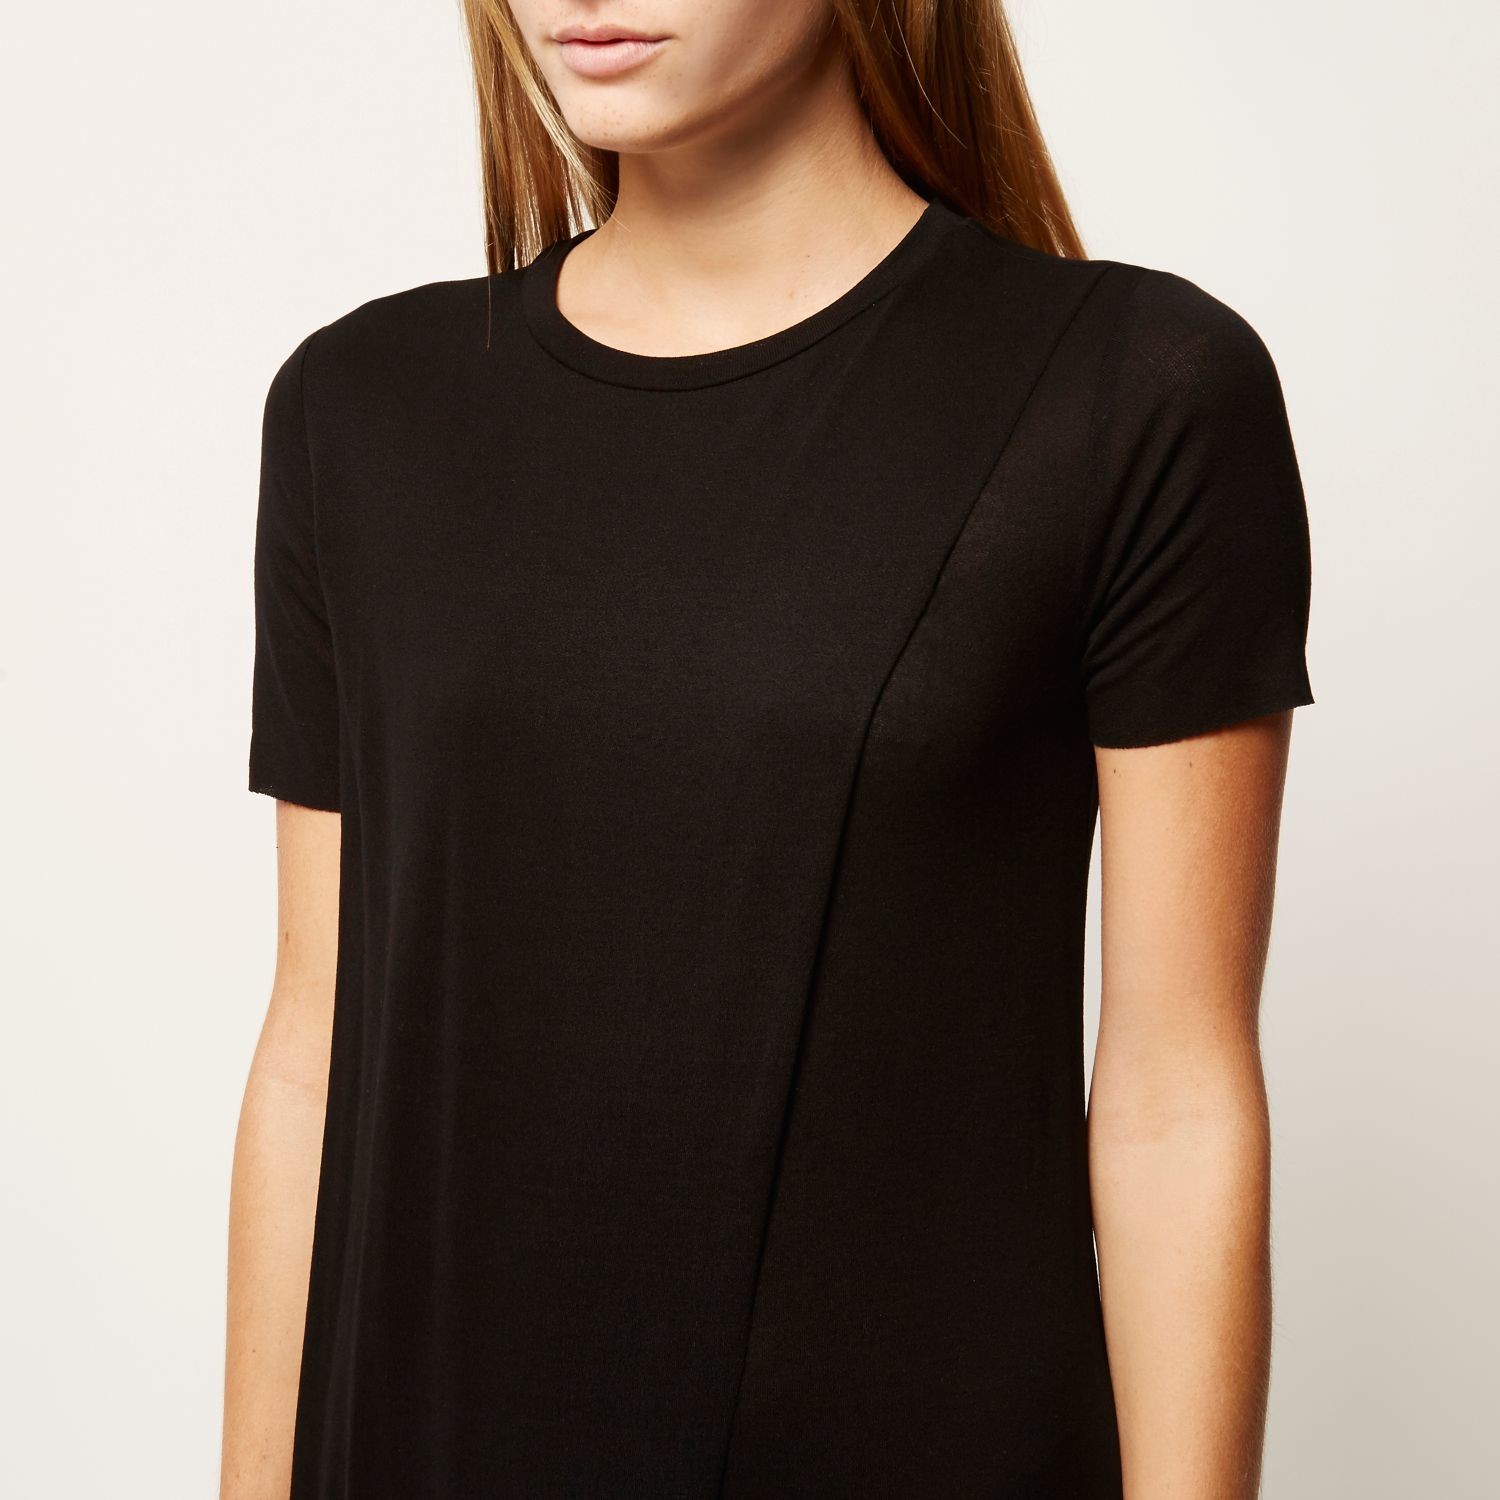 River Island Black Shirt Dress - 20 Great Ideas